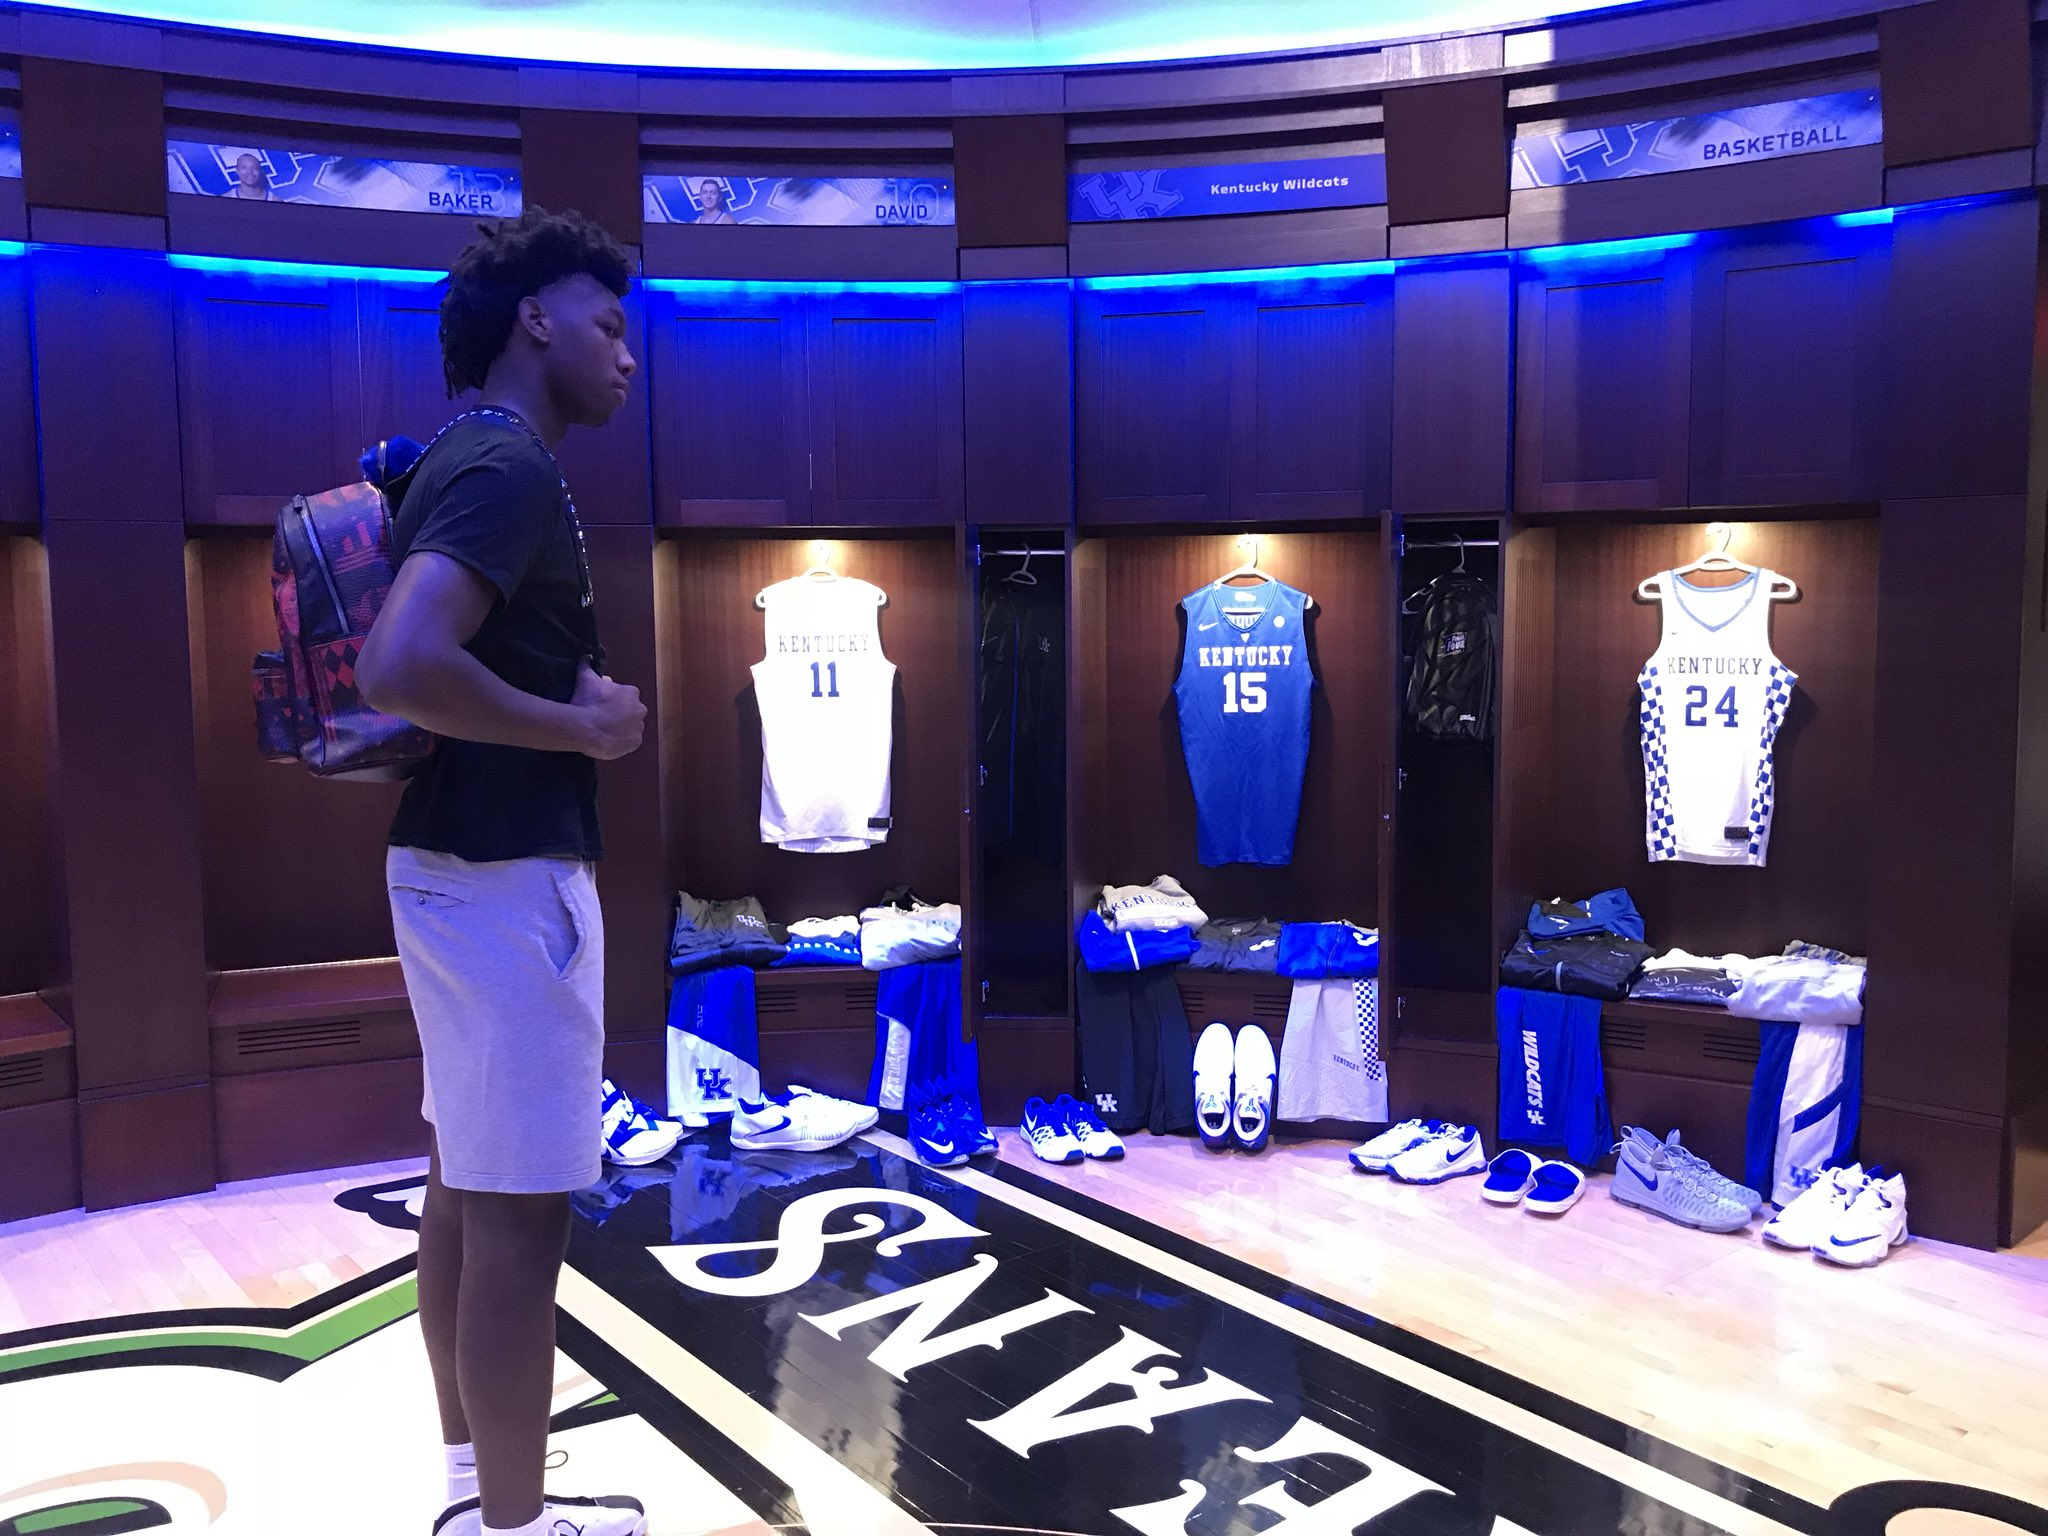 Calipari S Kentucky Wildcats Are Young Streaky And Loaded: Kentucky Wildcats Basketball